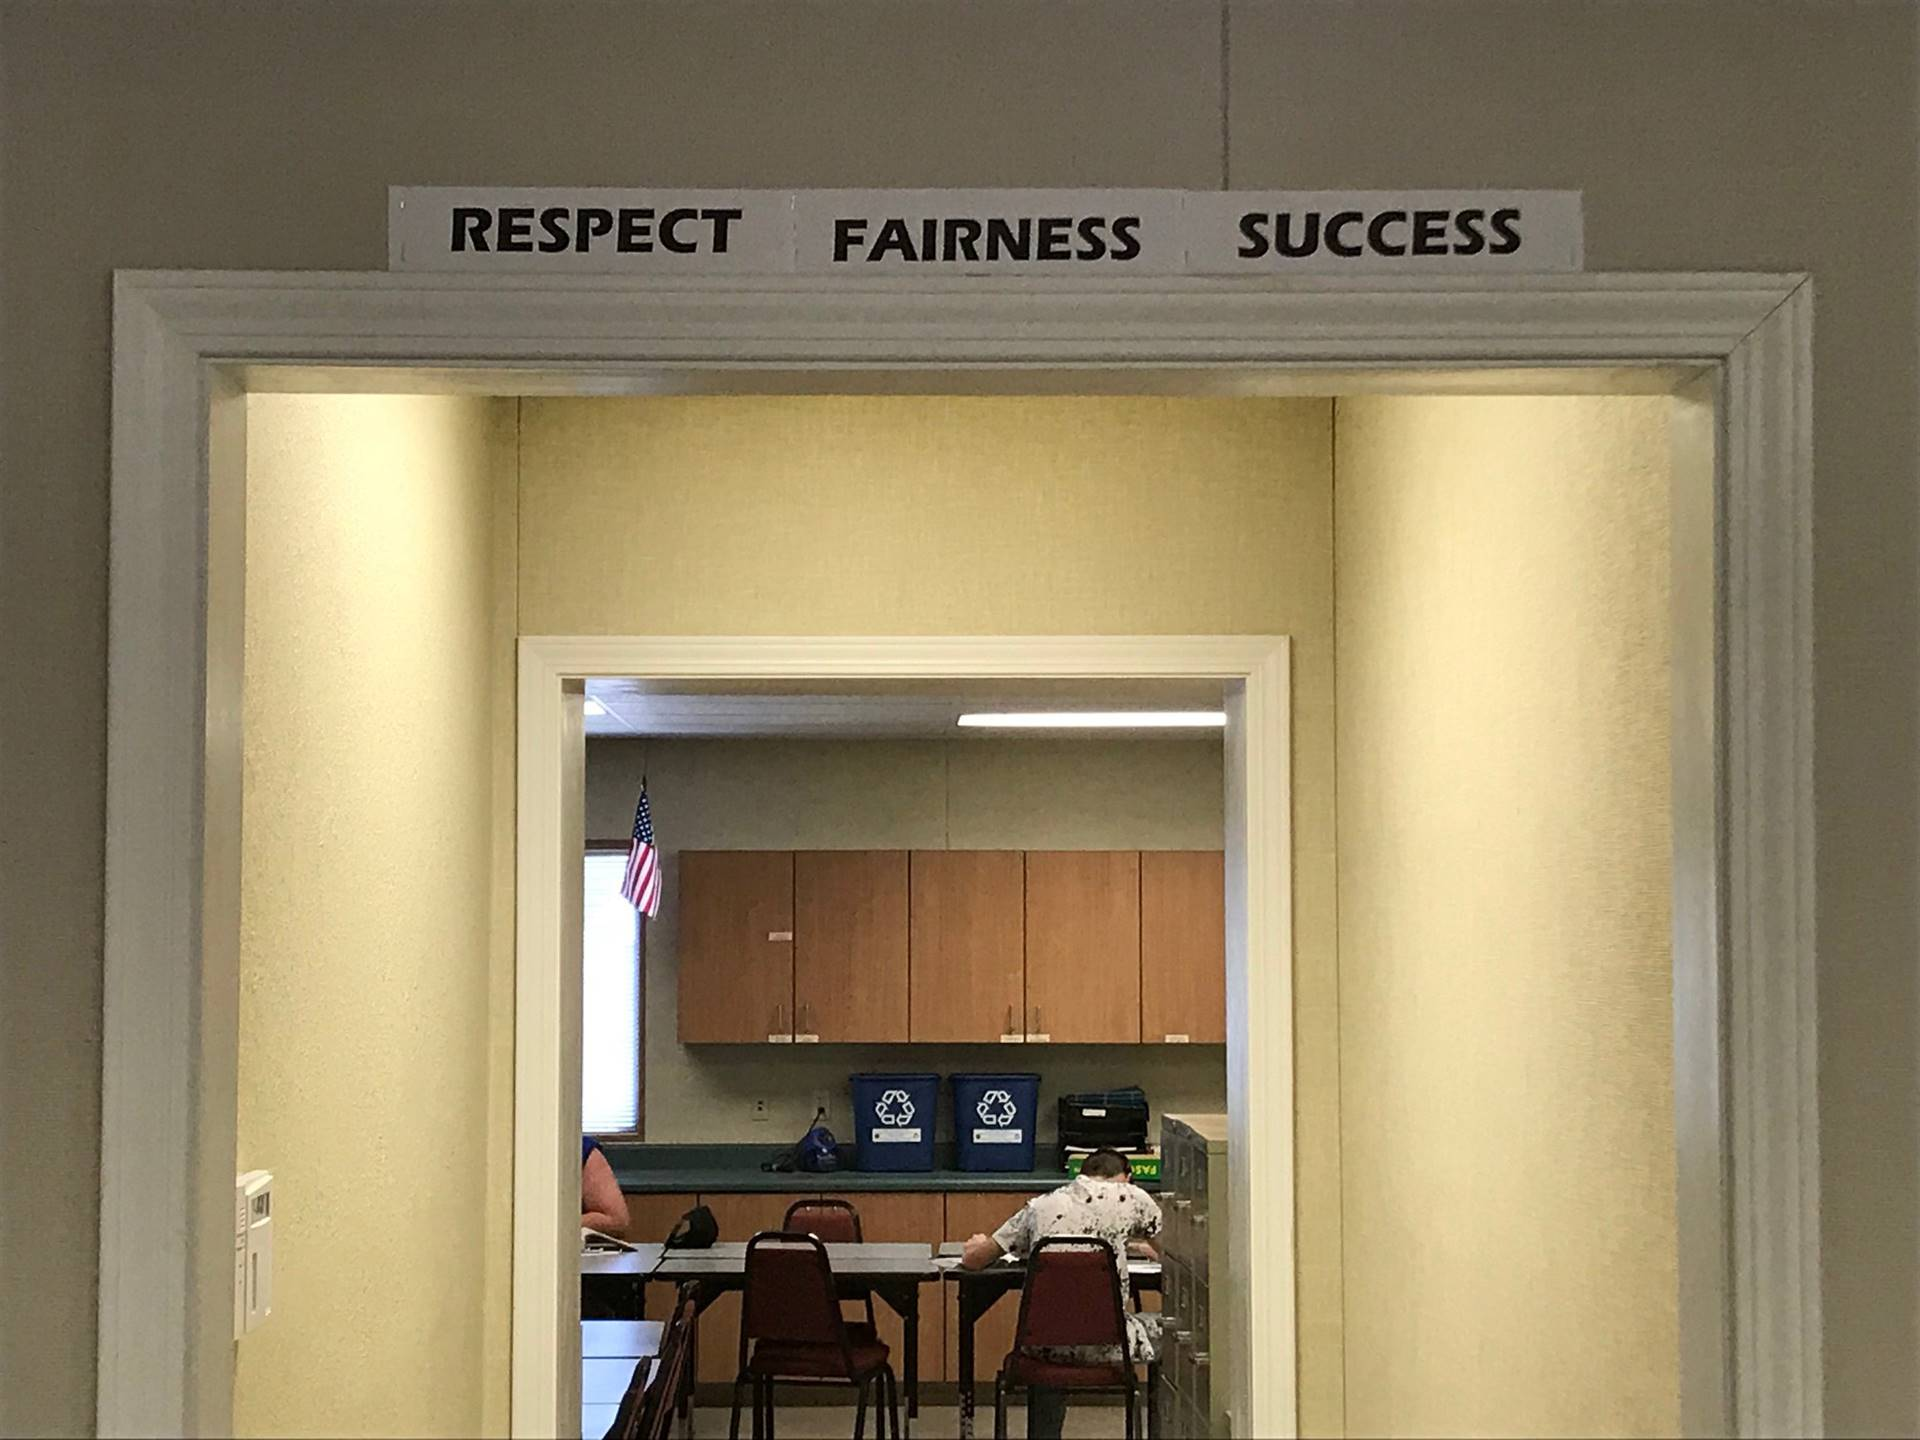 Respect Fairness Success